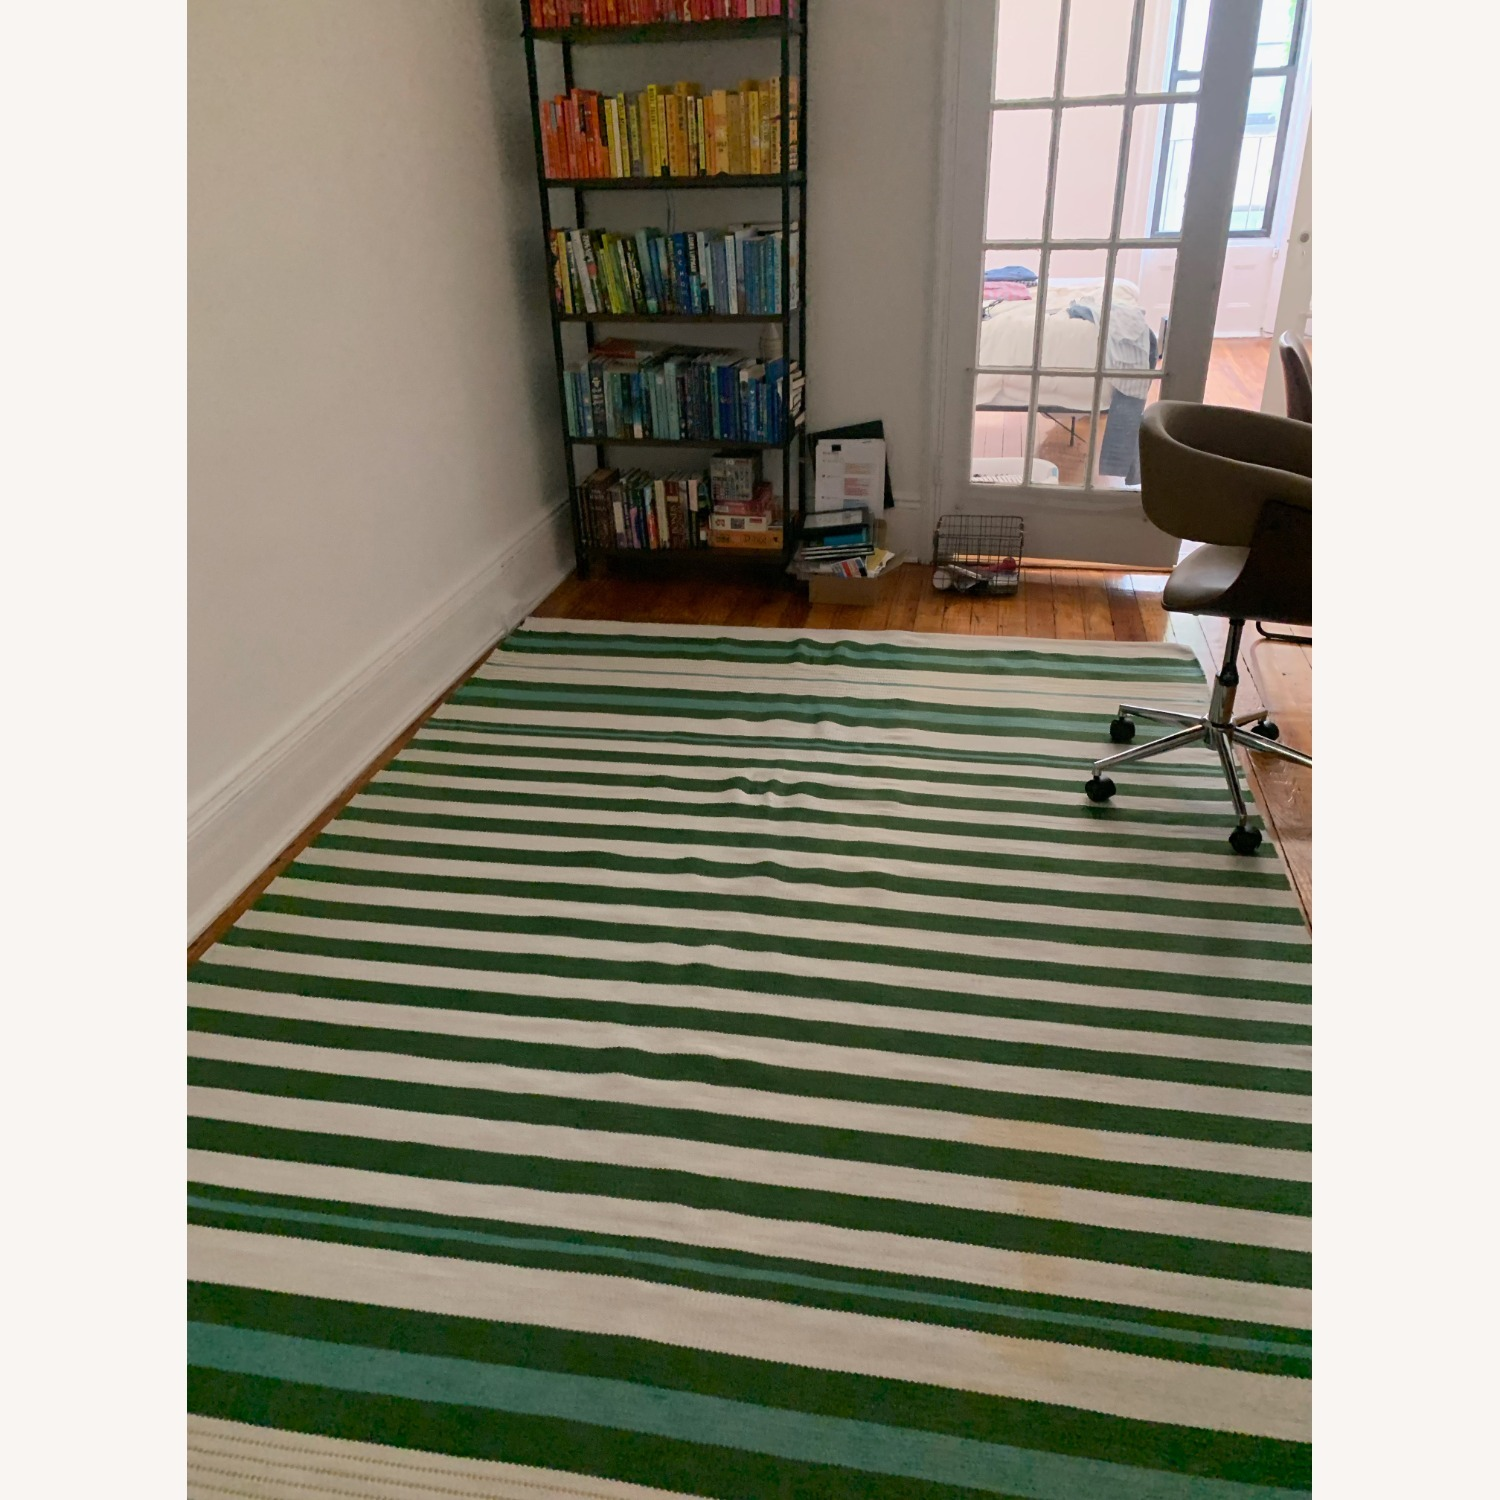 Target Teal Green Striped Woven Rug 7 x 10 - image-2